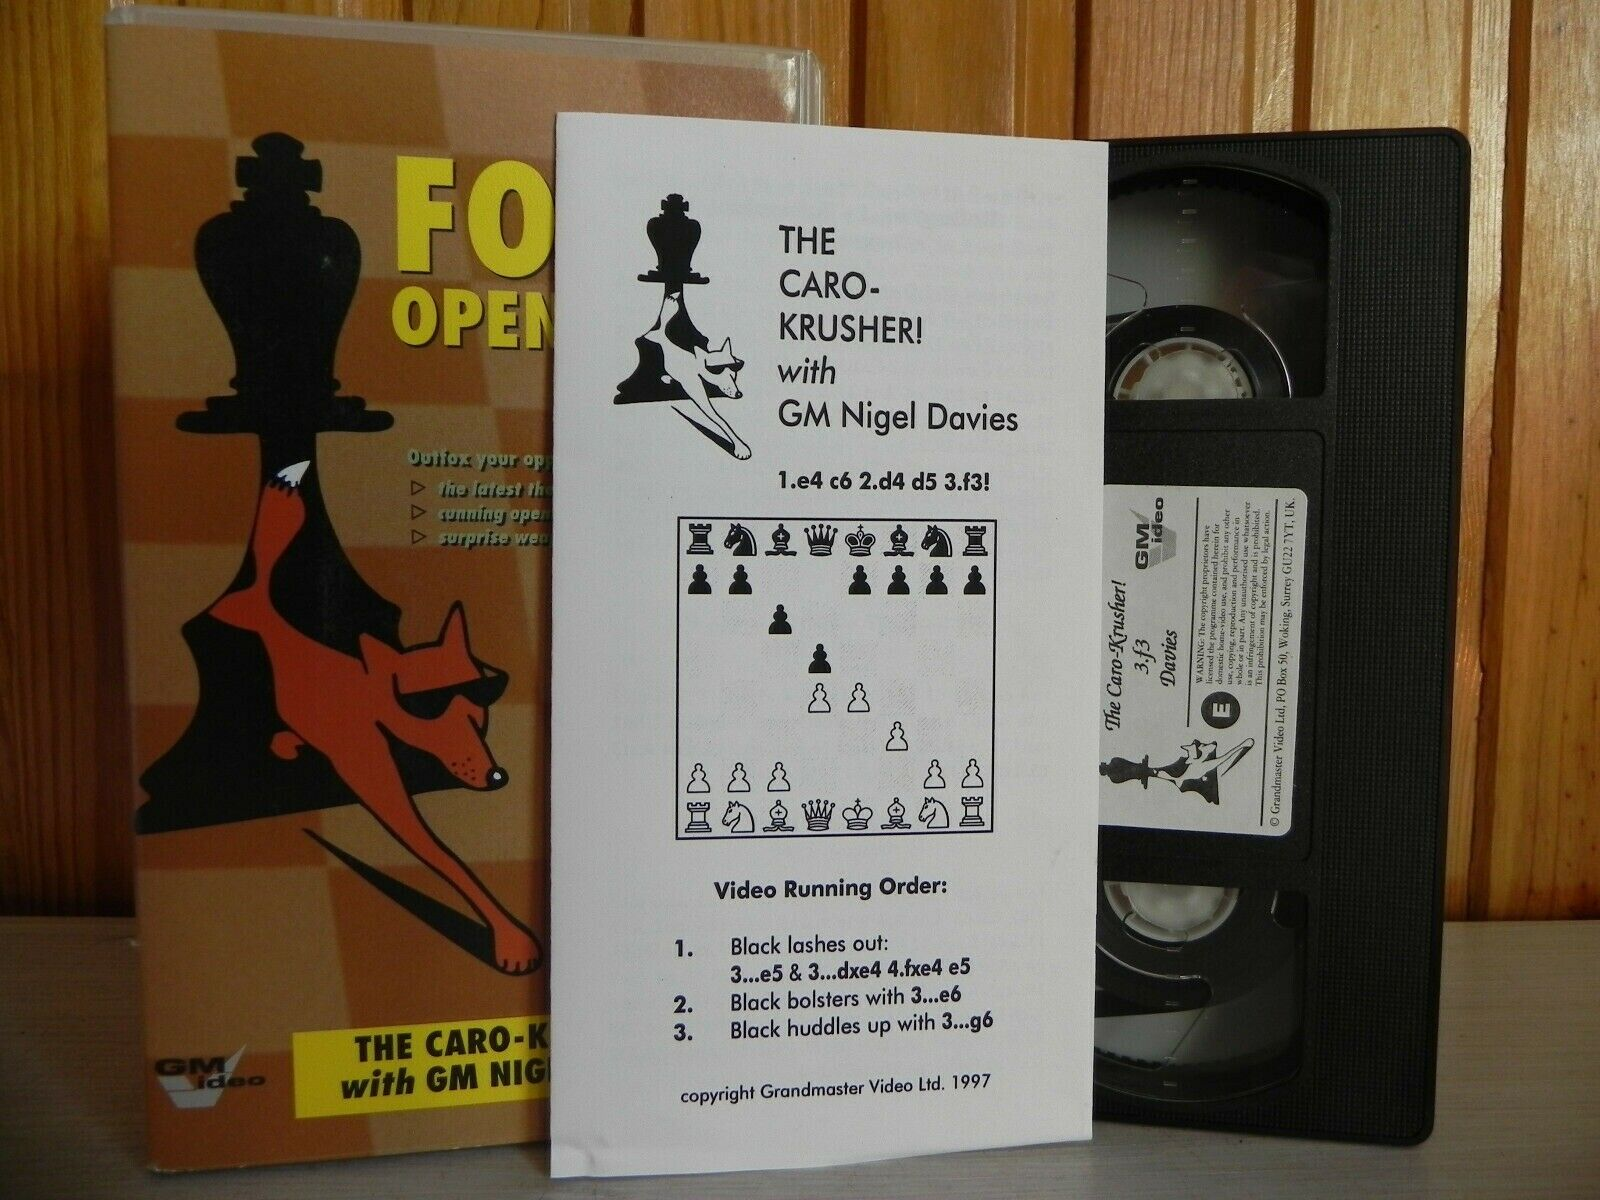 Foxy Openings - The Caro-Krusher! - With GM Nigel Davis - Latest Theory - VHS